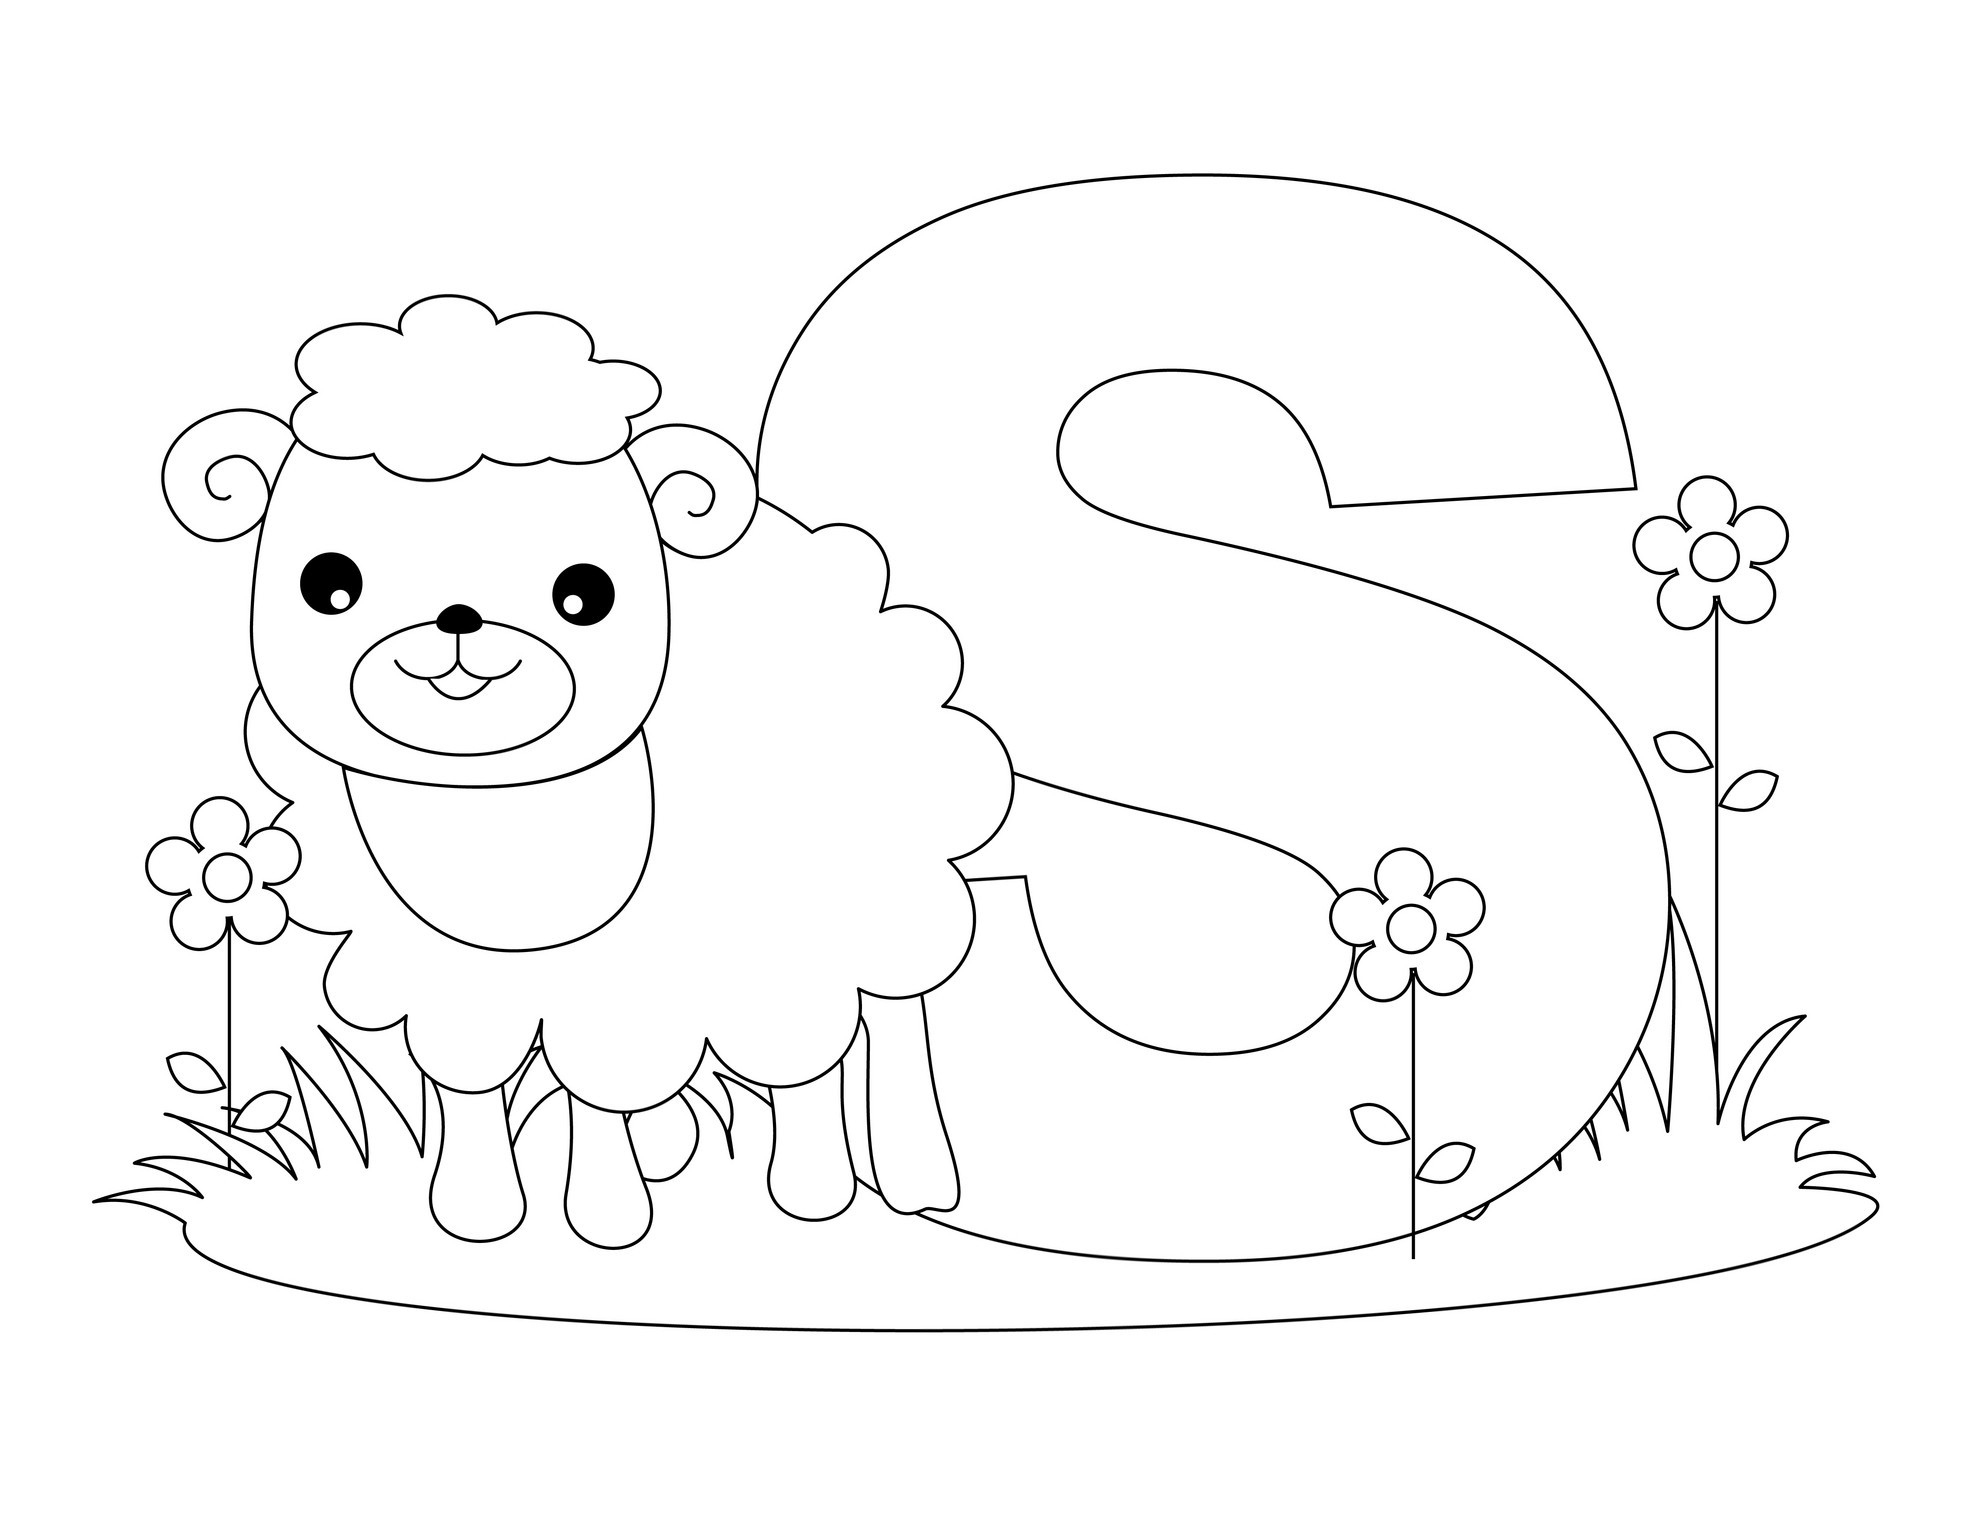 Coloring Book Pages Alphabet : Free printable alphabet coloring pages for kids best